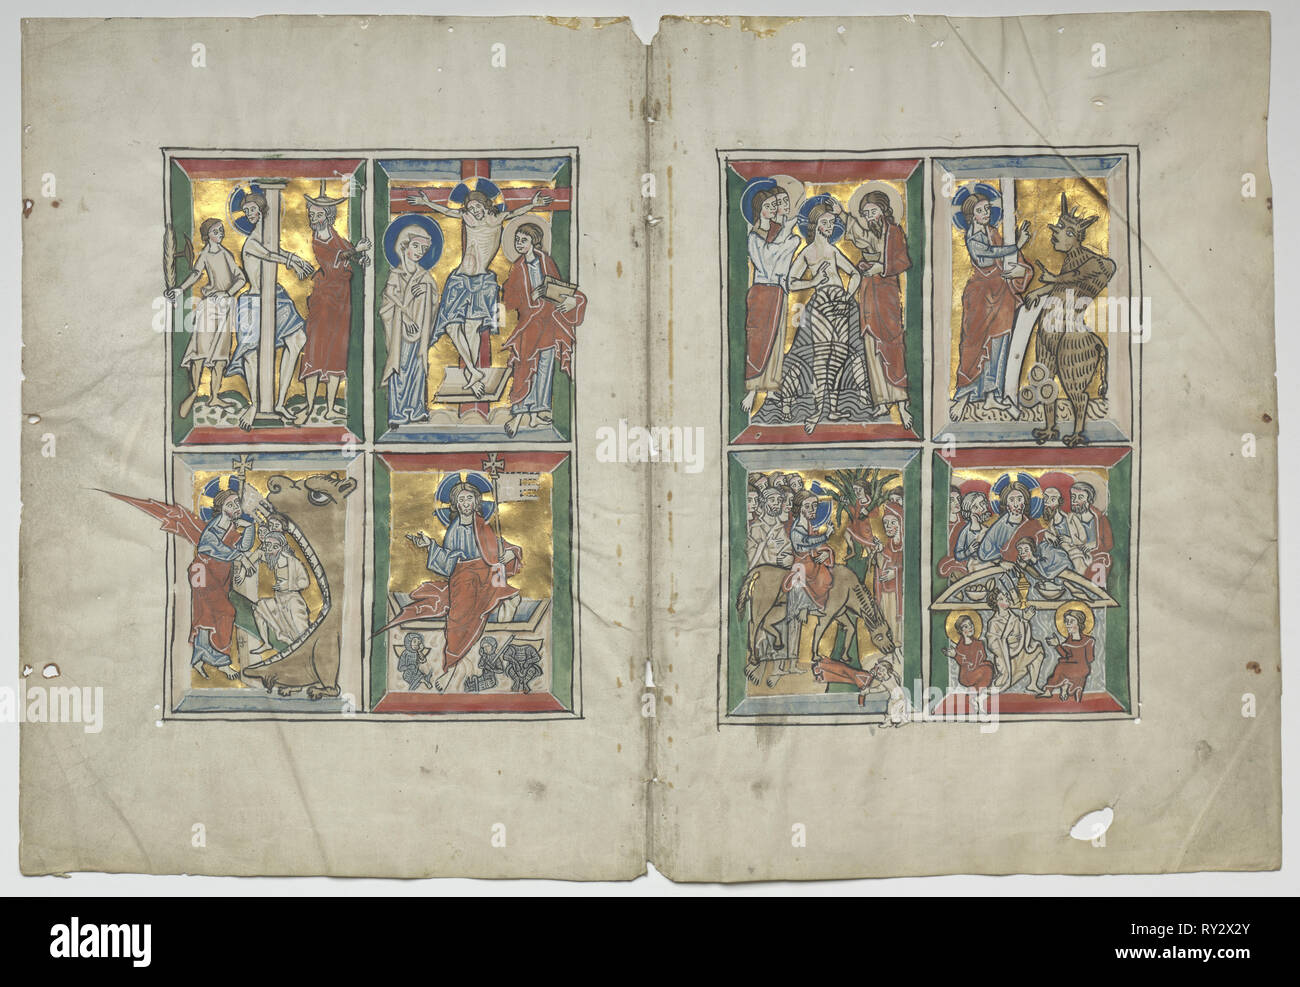 Bifolio with Scenes from the Life of Christ, 1230-1240. Germany, Lower Saxony (Diocese of Hildesheim), Braunschweig(?), 13th century. Tempera, and gold on vellum; sheet: 31 x 22.5 cm (12 3/16 x 8 7/8 in.); framed: 48.3 x 63.5 cm (19 x 25 in.); overall: 30.7 x 45.2 cm (12 1/16 x 17 13/16 in.); matted: 40.6 x 55.9 cm (16 x 22 in Stock Photo